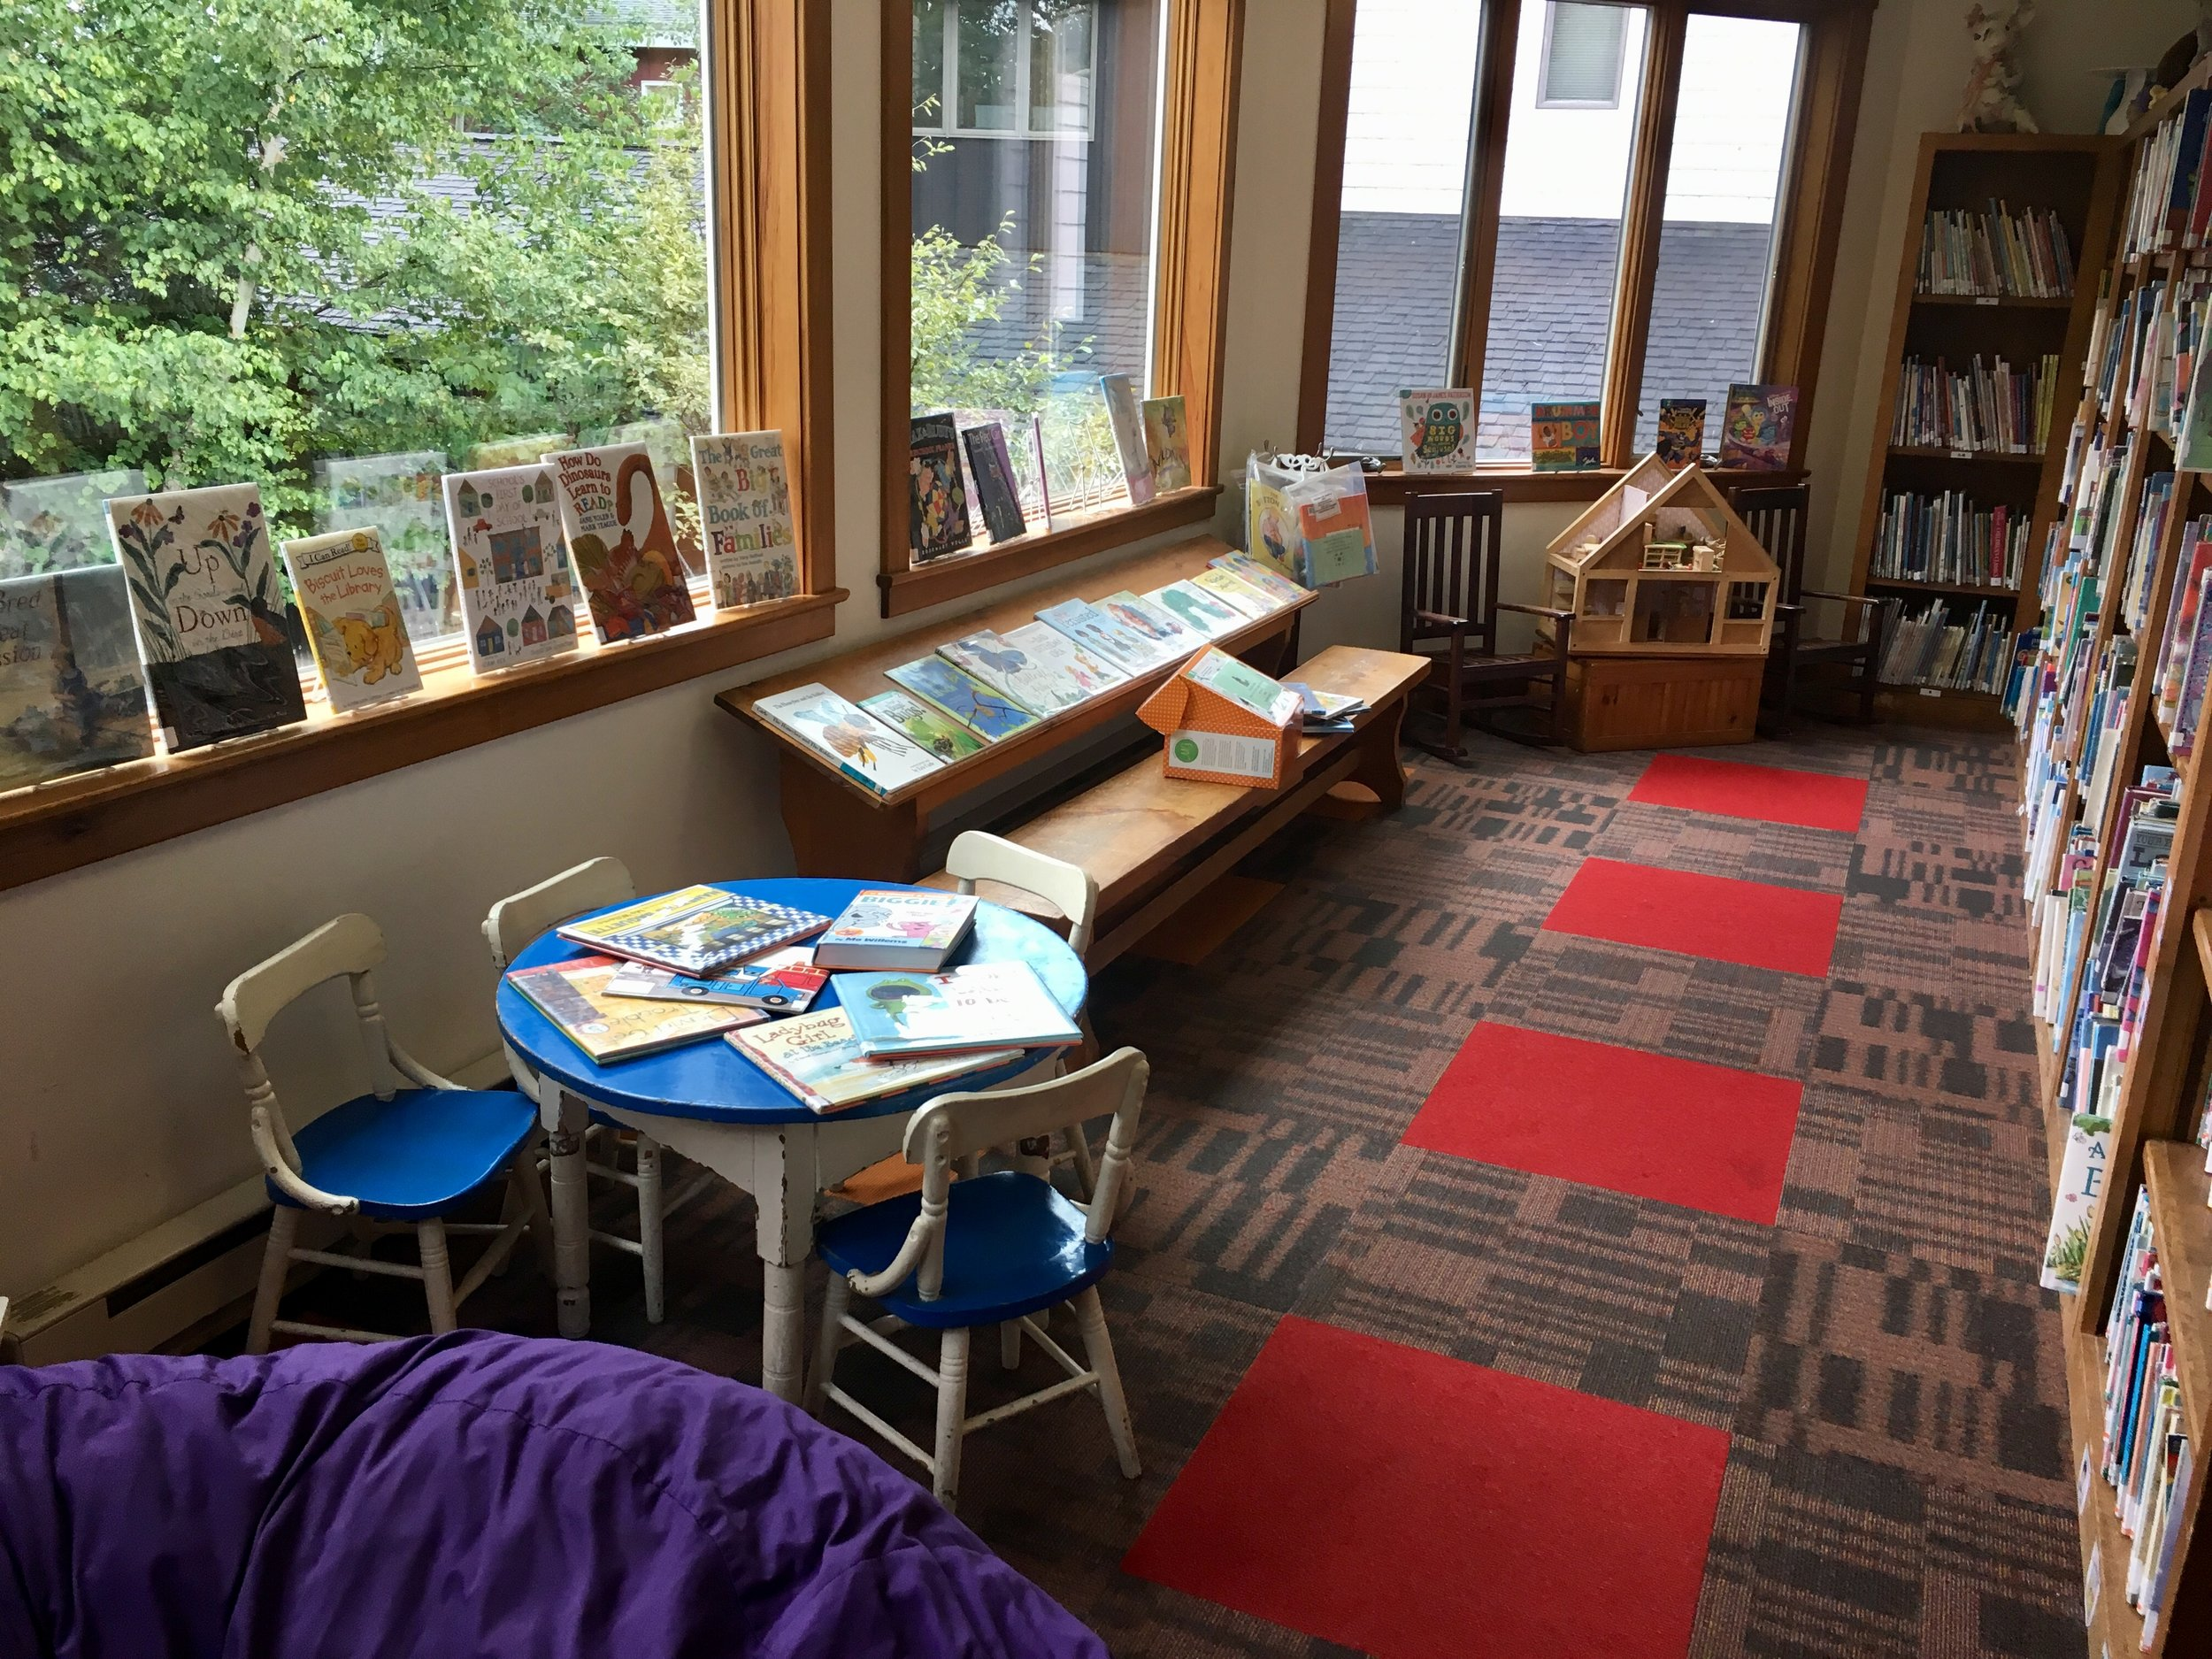 Lake placid library -